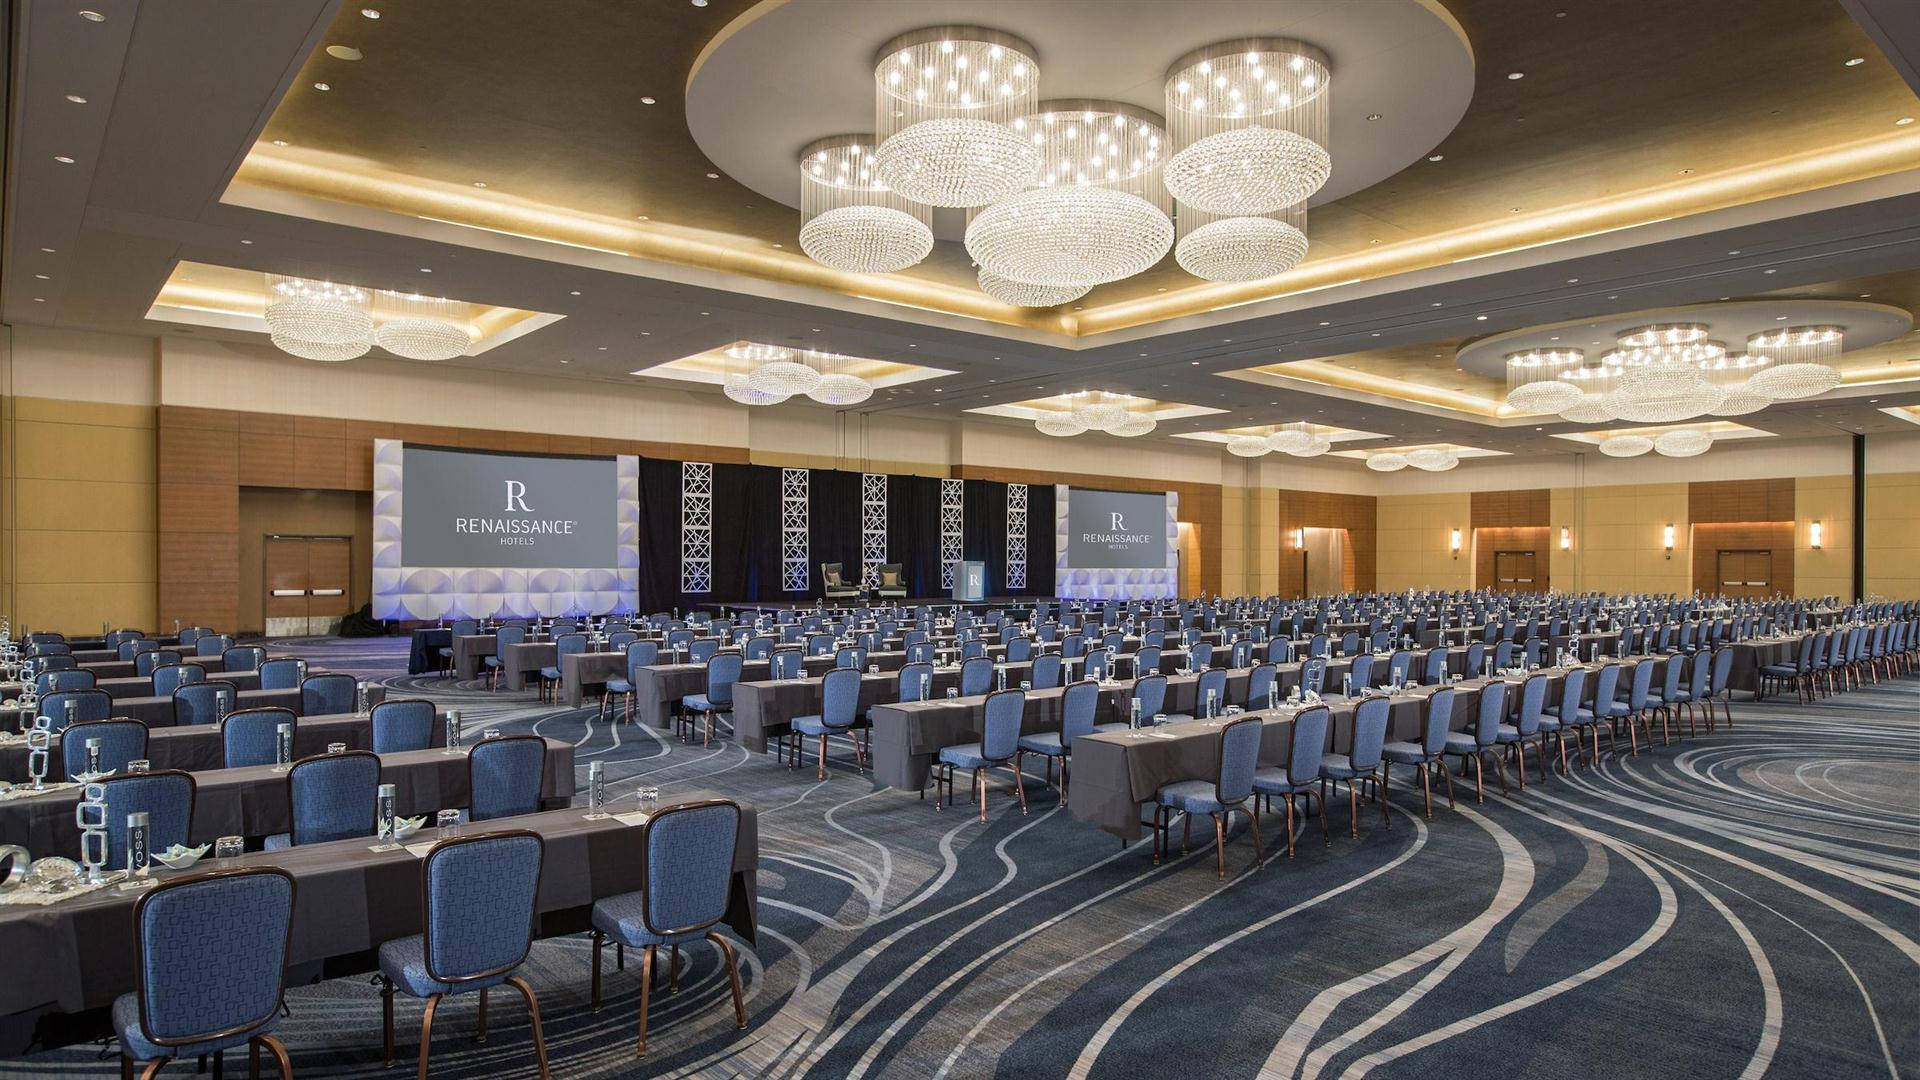 Meetings and Events at Renaissance Schaumburg Convention Center